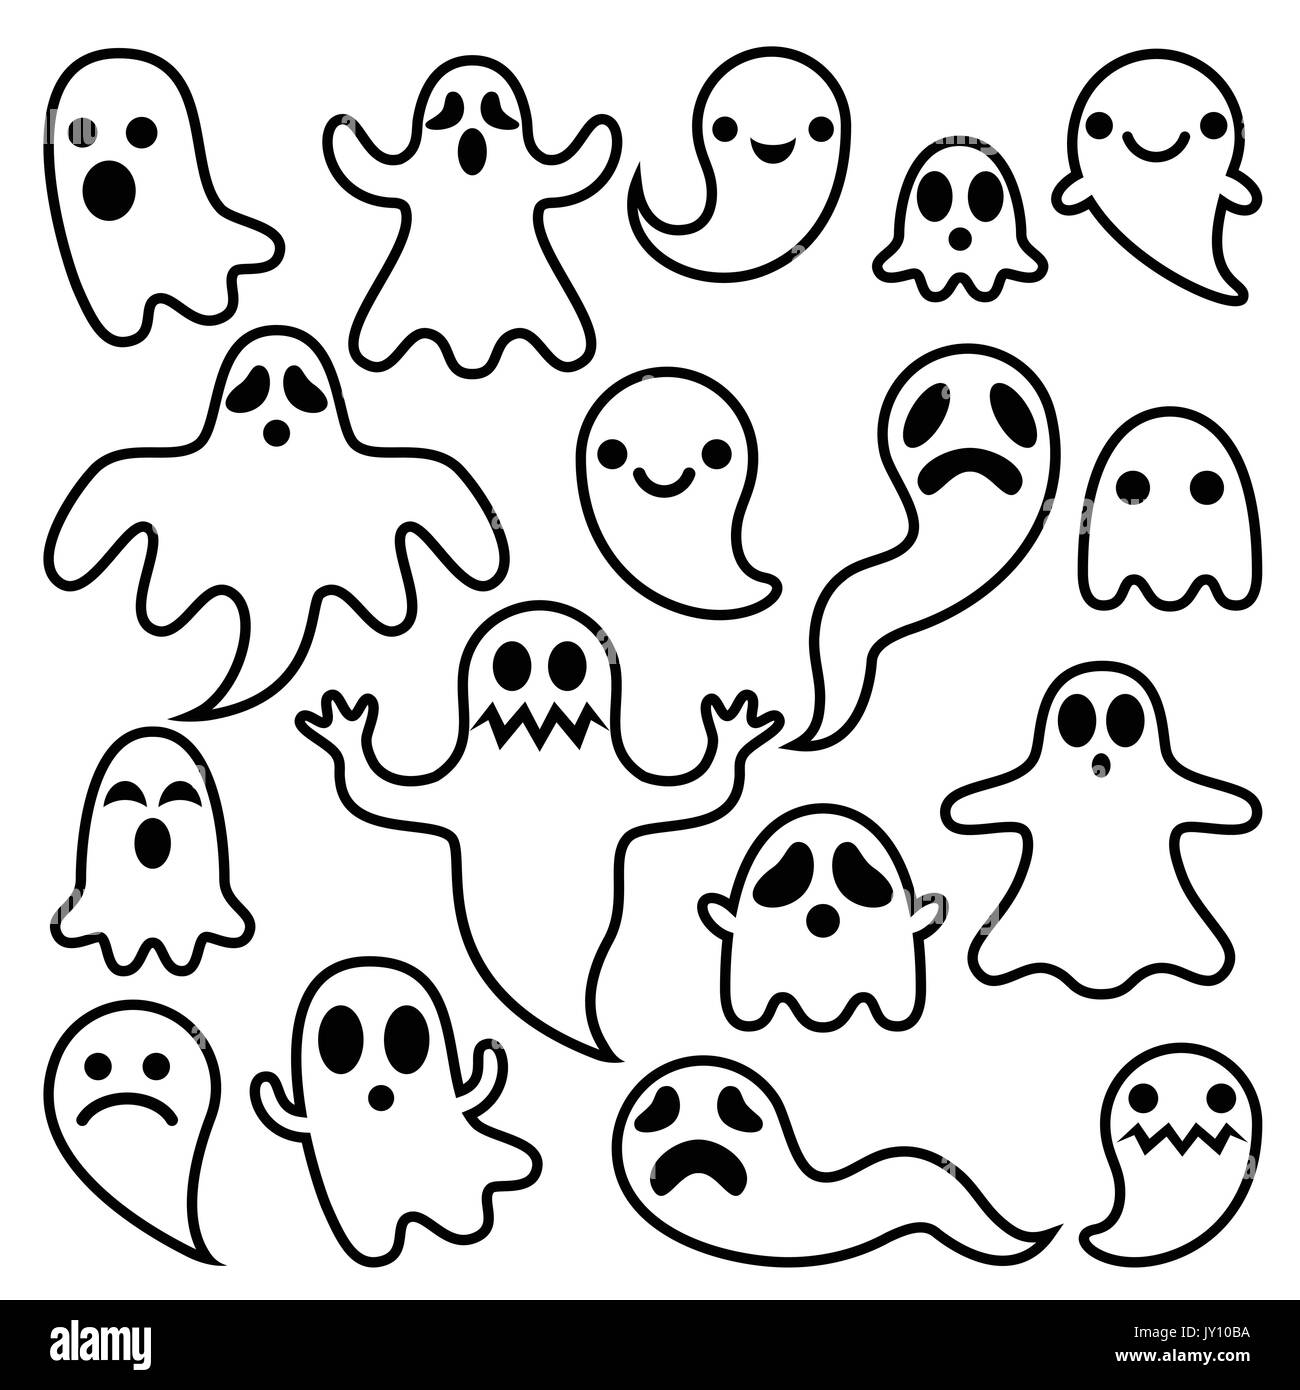 scary ghosts design  halloween characters icons set vector